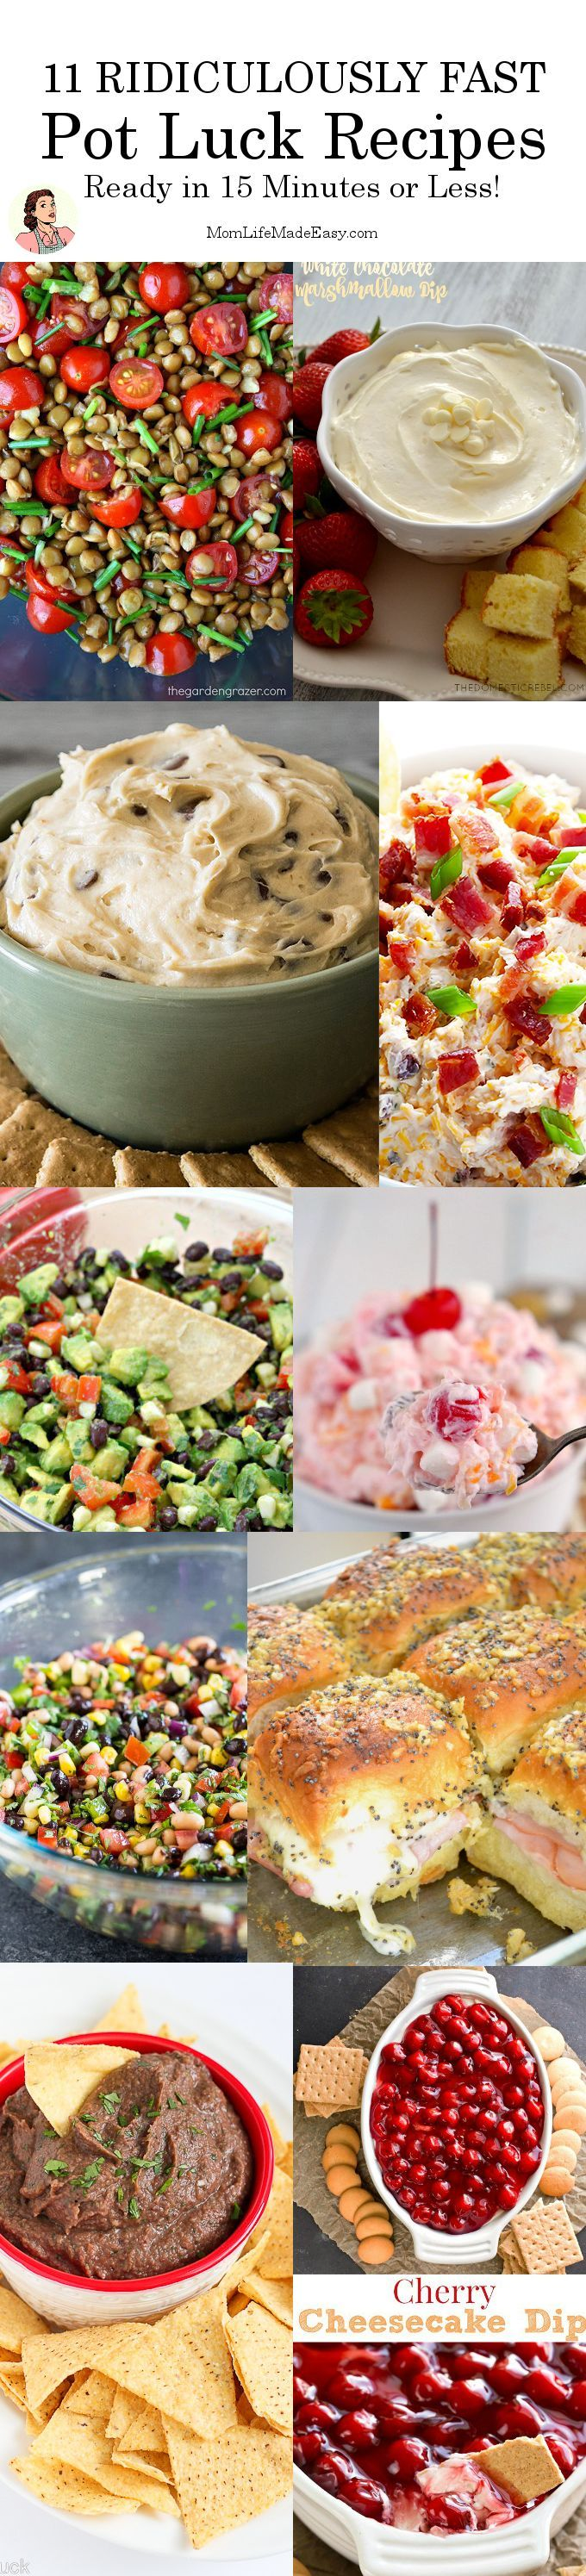 10 Last Minute Pot Luck Recipes